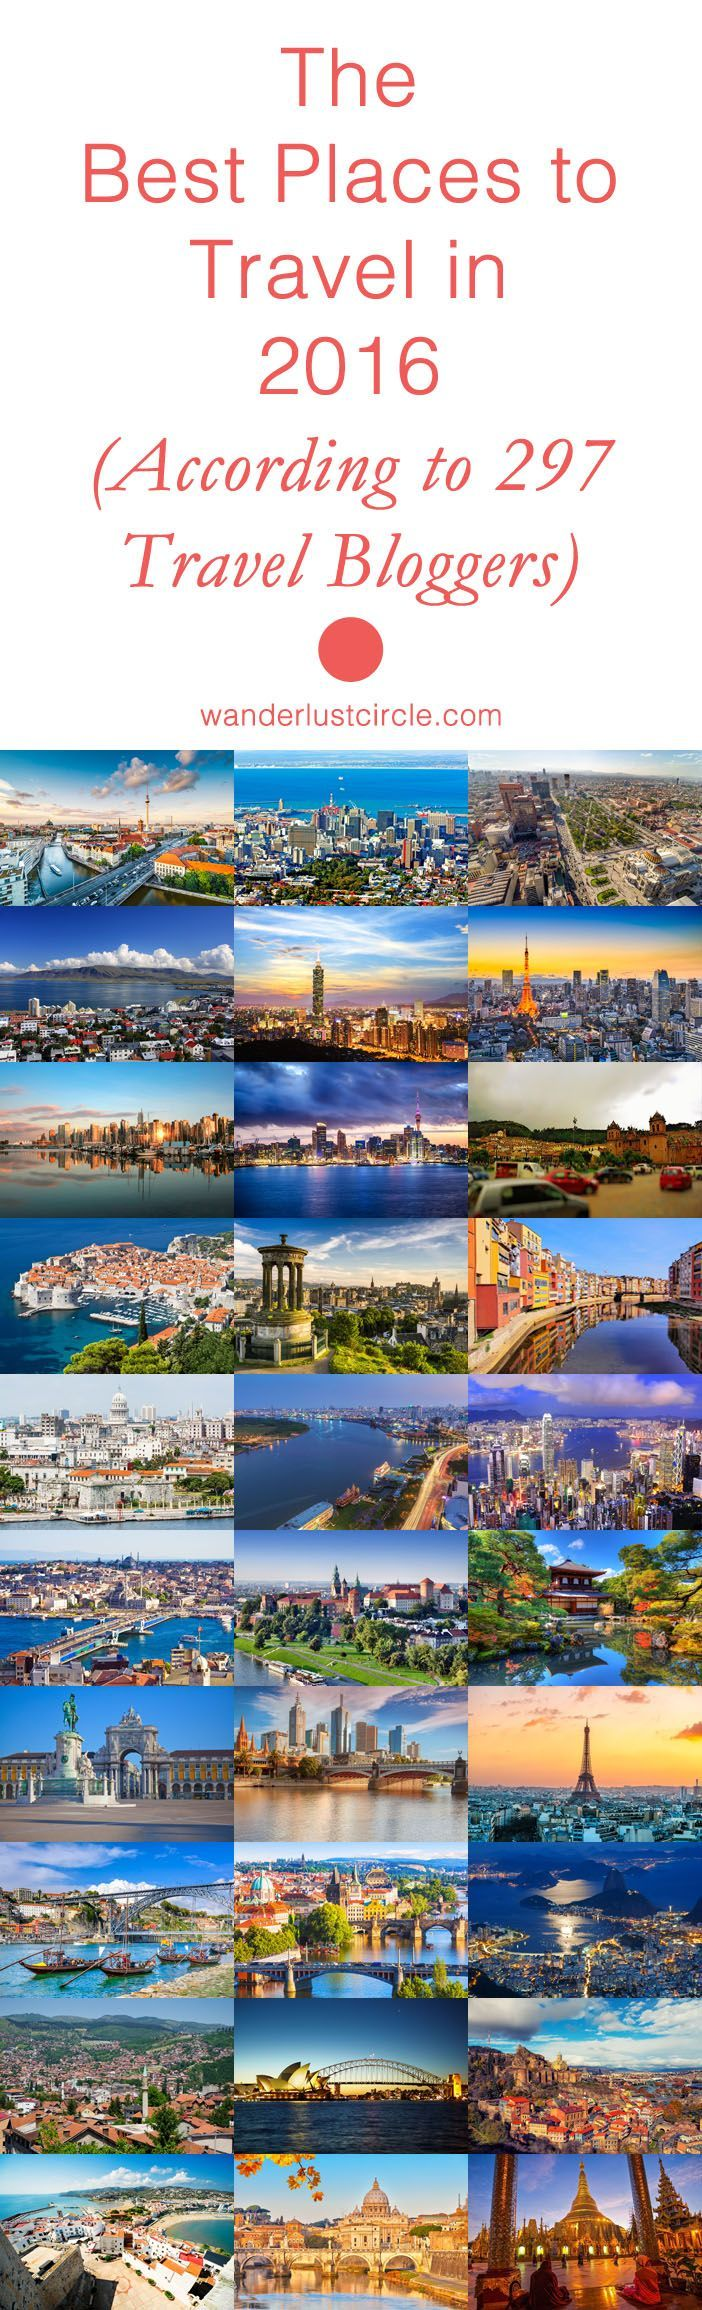 If you're planning on doing some traveling in 2016, you're in for a treat with this one! 297 incredible travel bloggers contributed to help us all decide where to go and what to see in this amazing world we live in. Keep in mind, this isn't your typical b